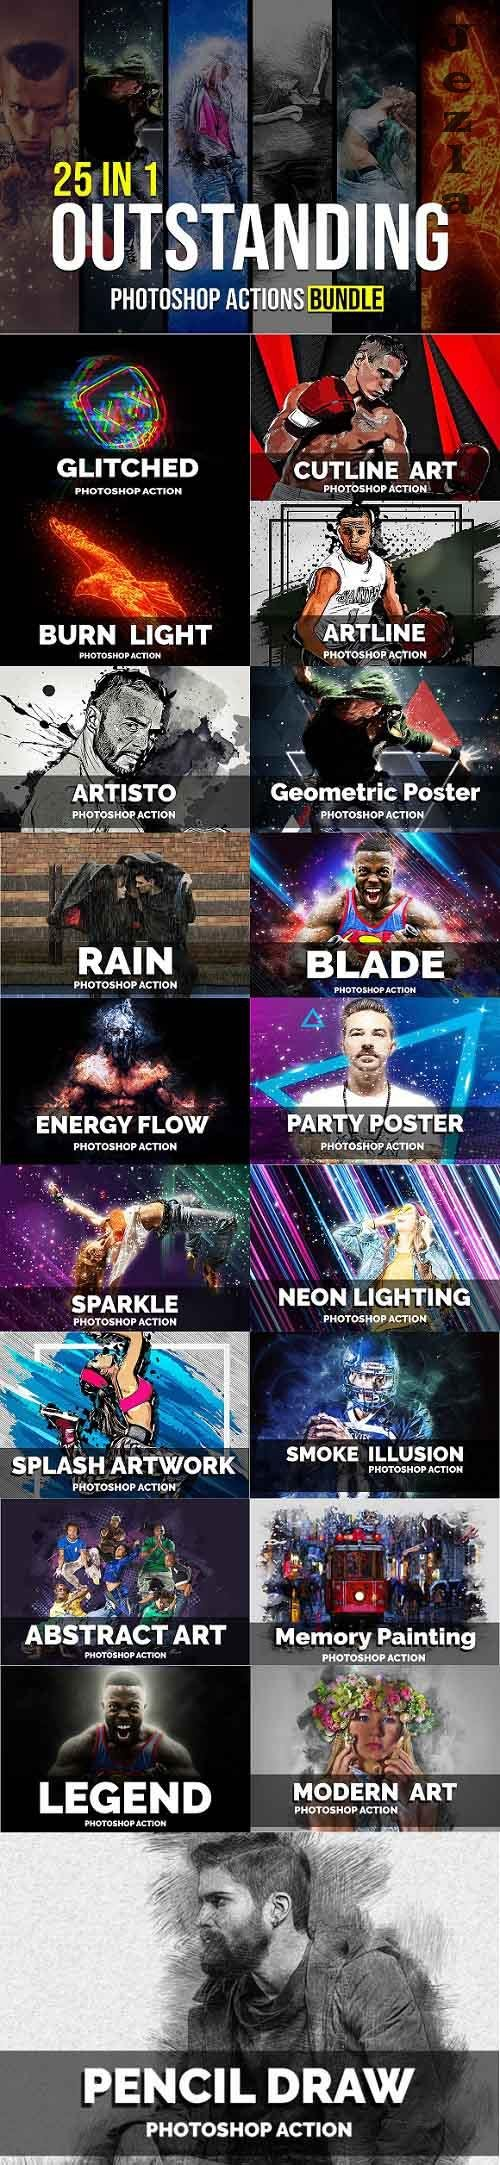 25 In 1 Outstanding Photoshop Actions Bundle - 5299135